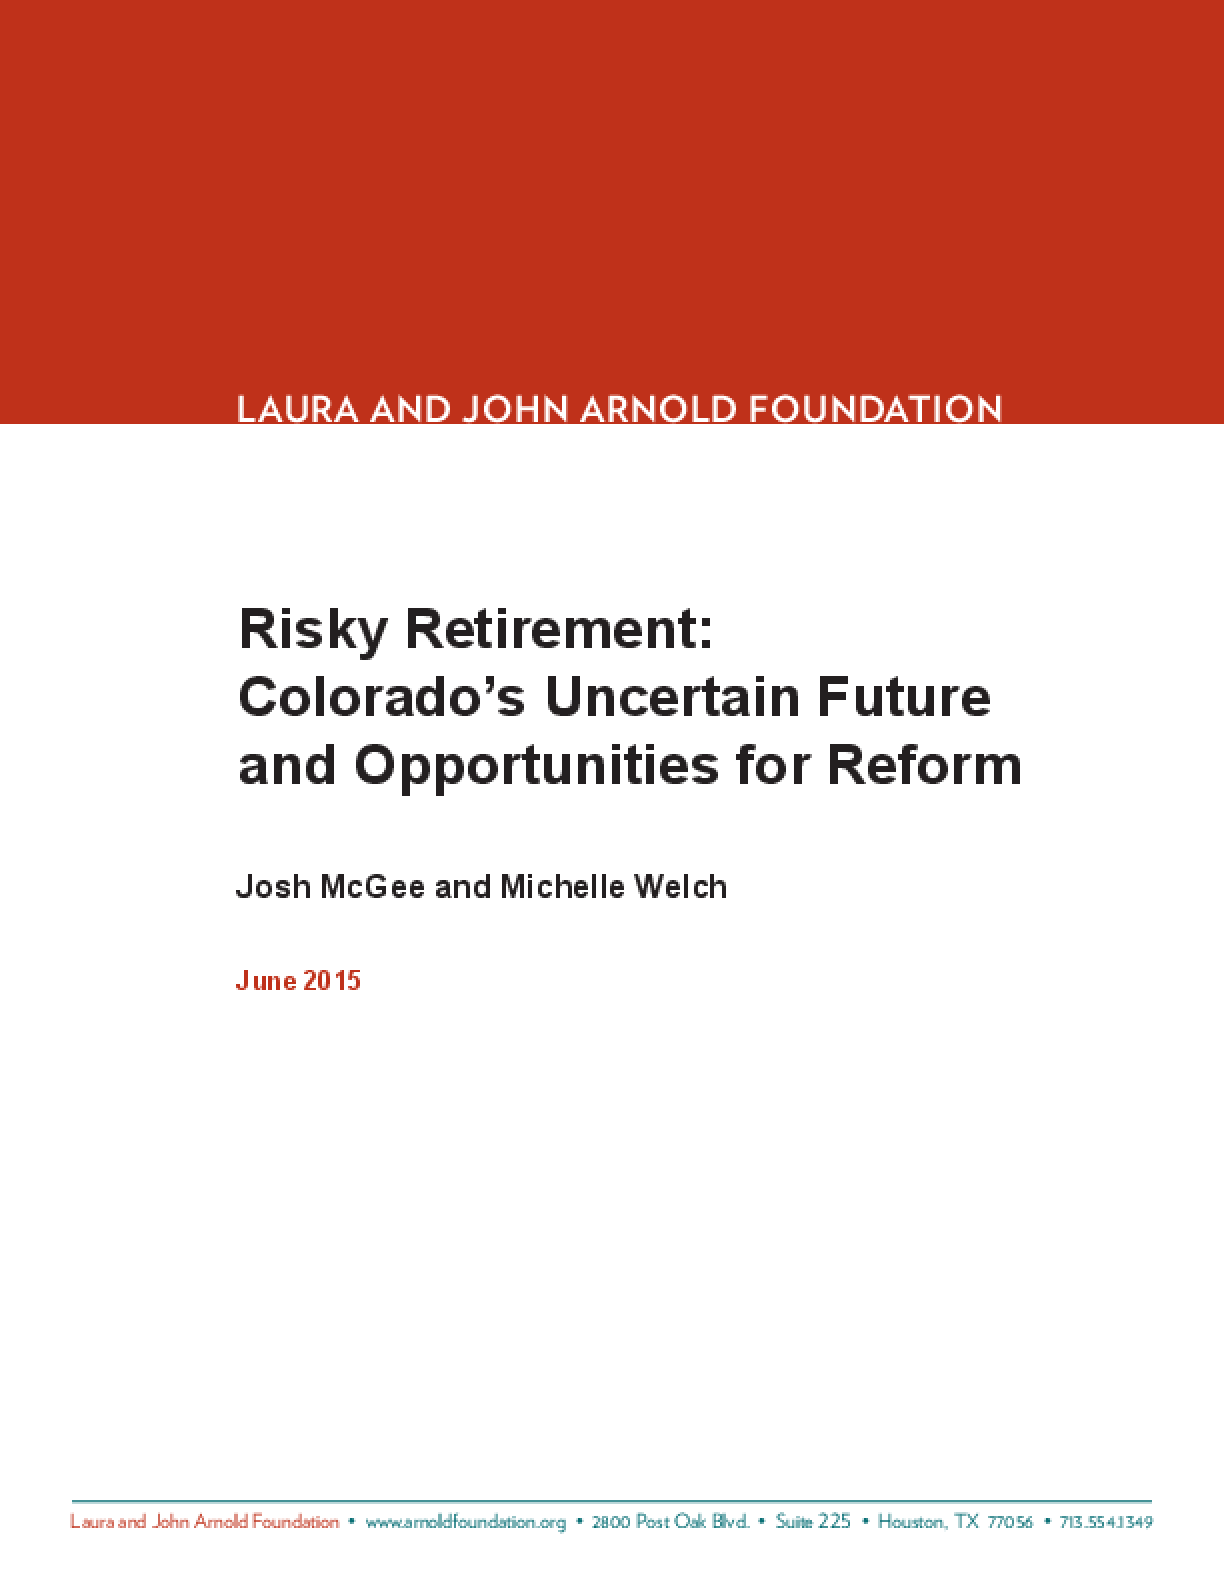 Risky Retirement: Colorado's Uncertain Future and Opportunities for Reform